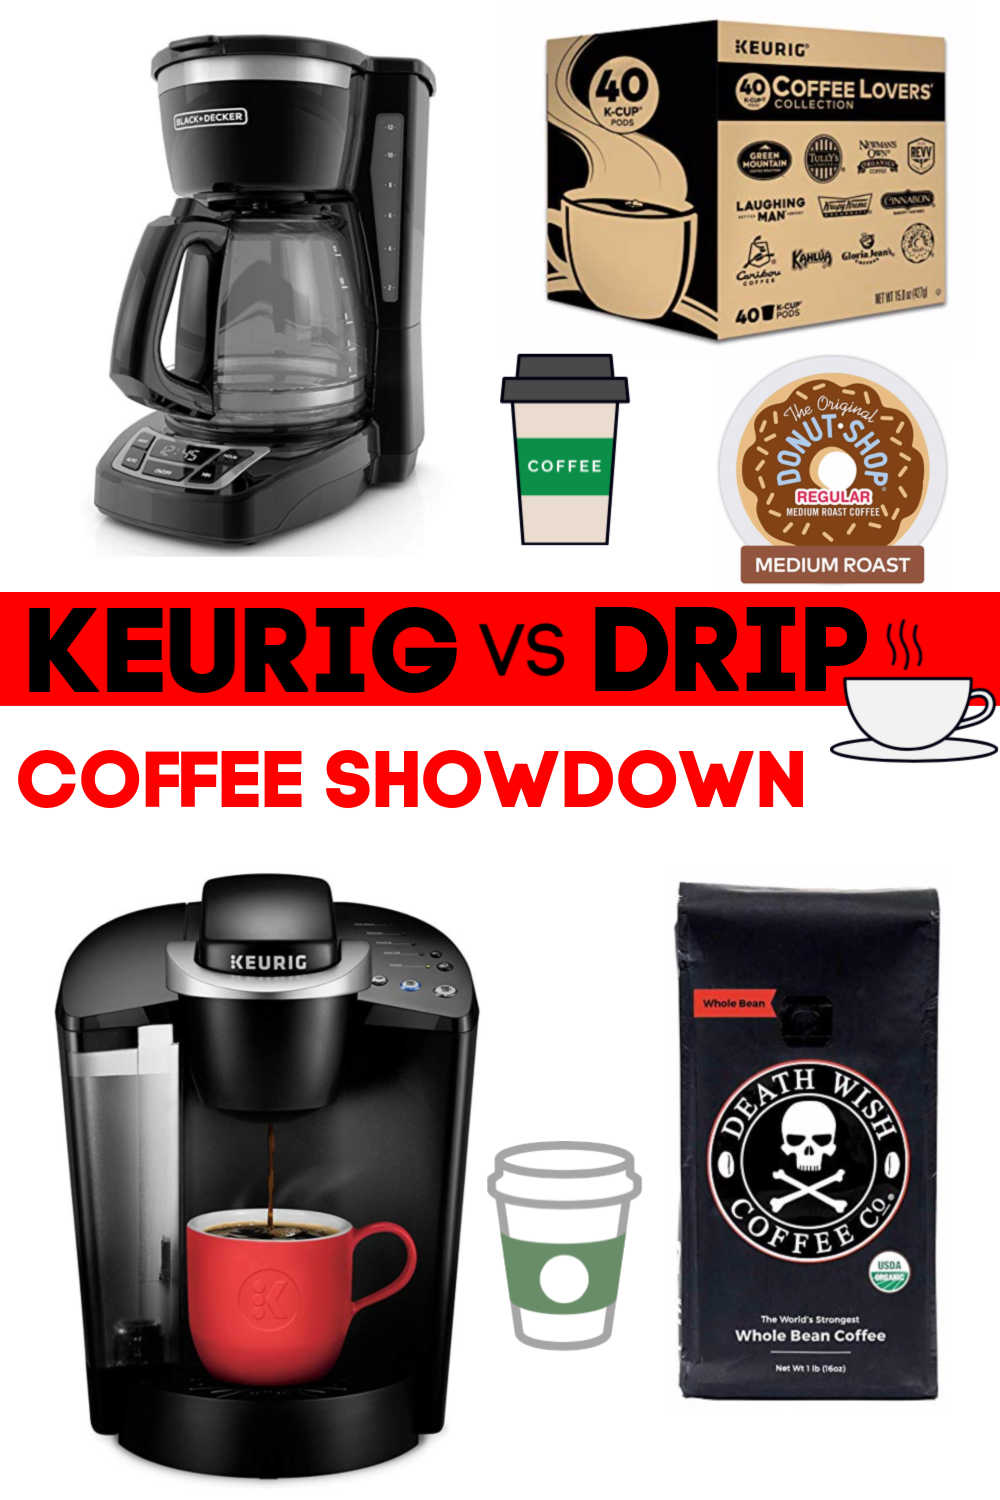 Keurig vs Drip Coffee Showdown. Drip coffee saves money but is not available as quickly as k cups #Keurig #dripcoffee #coffee #frugal